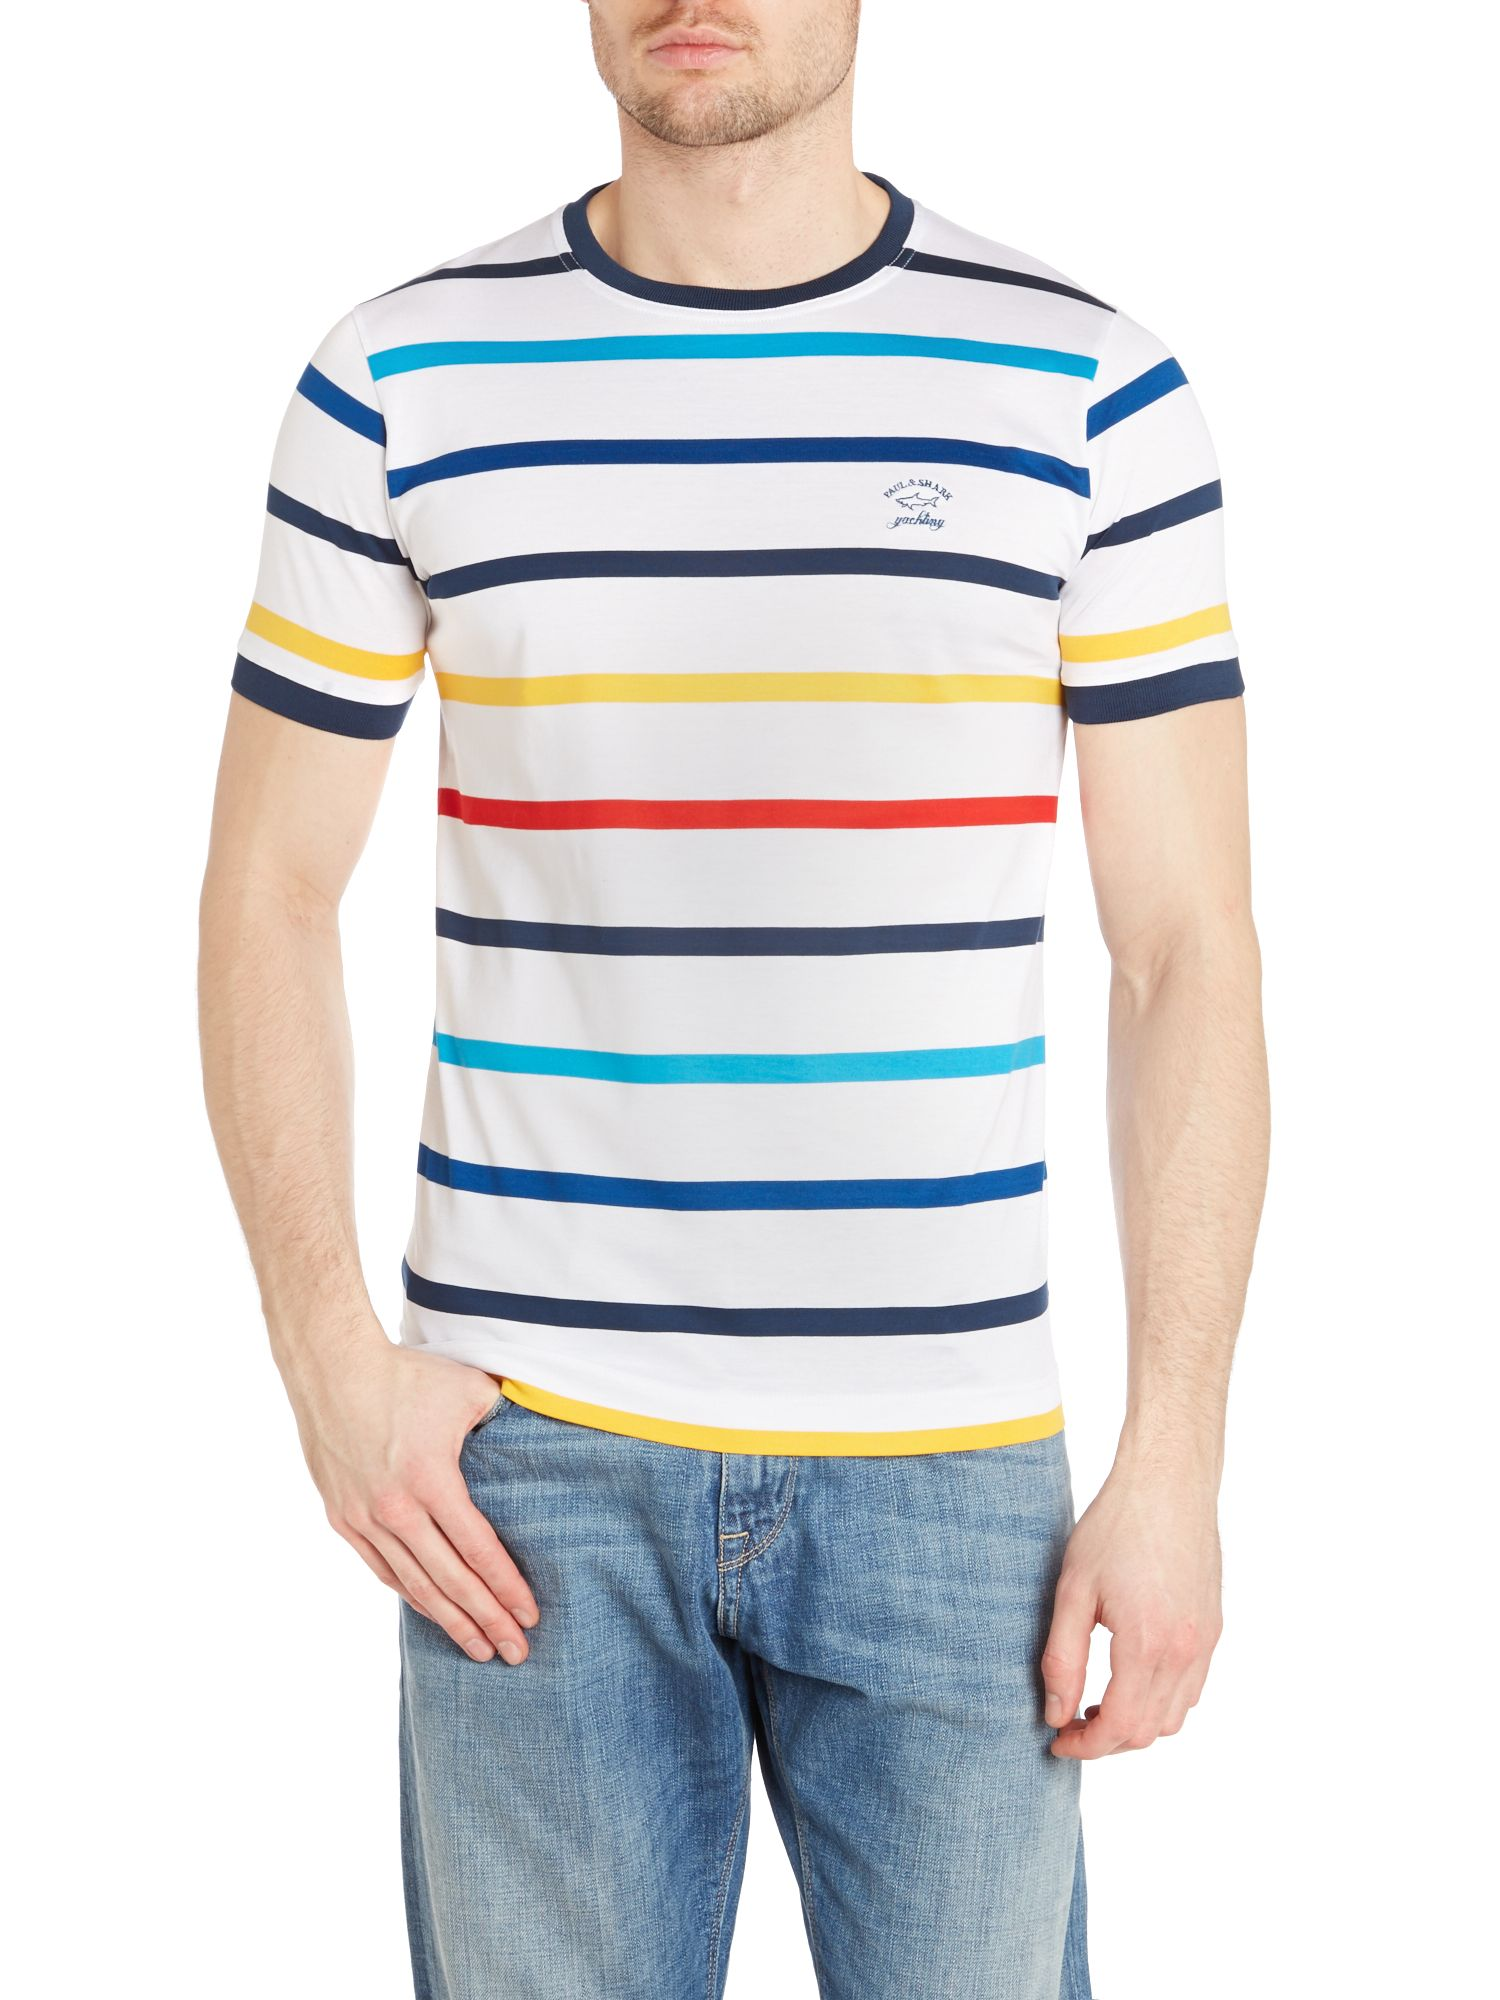 Striped crew neck t shirt